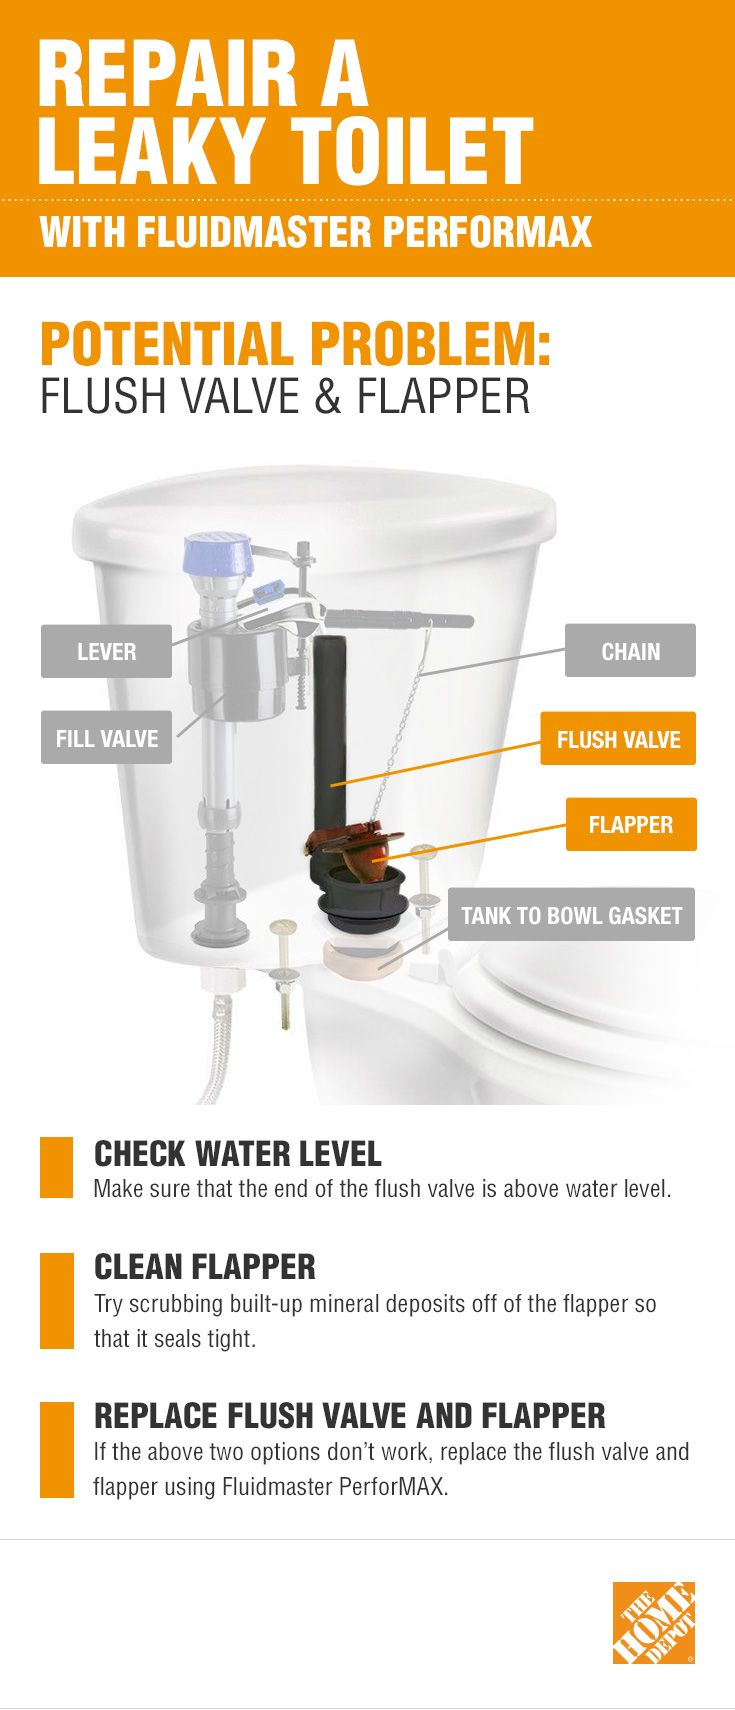 If You Have A Leaky Toilet The Problem May Be The Flush Valve And The Flapper First Make Sure The End Of The Flush Valve Is Toilet Repair Repair Home Repair